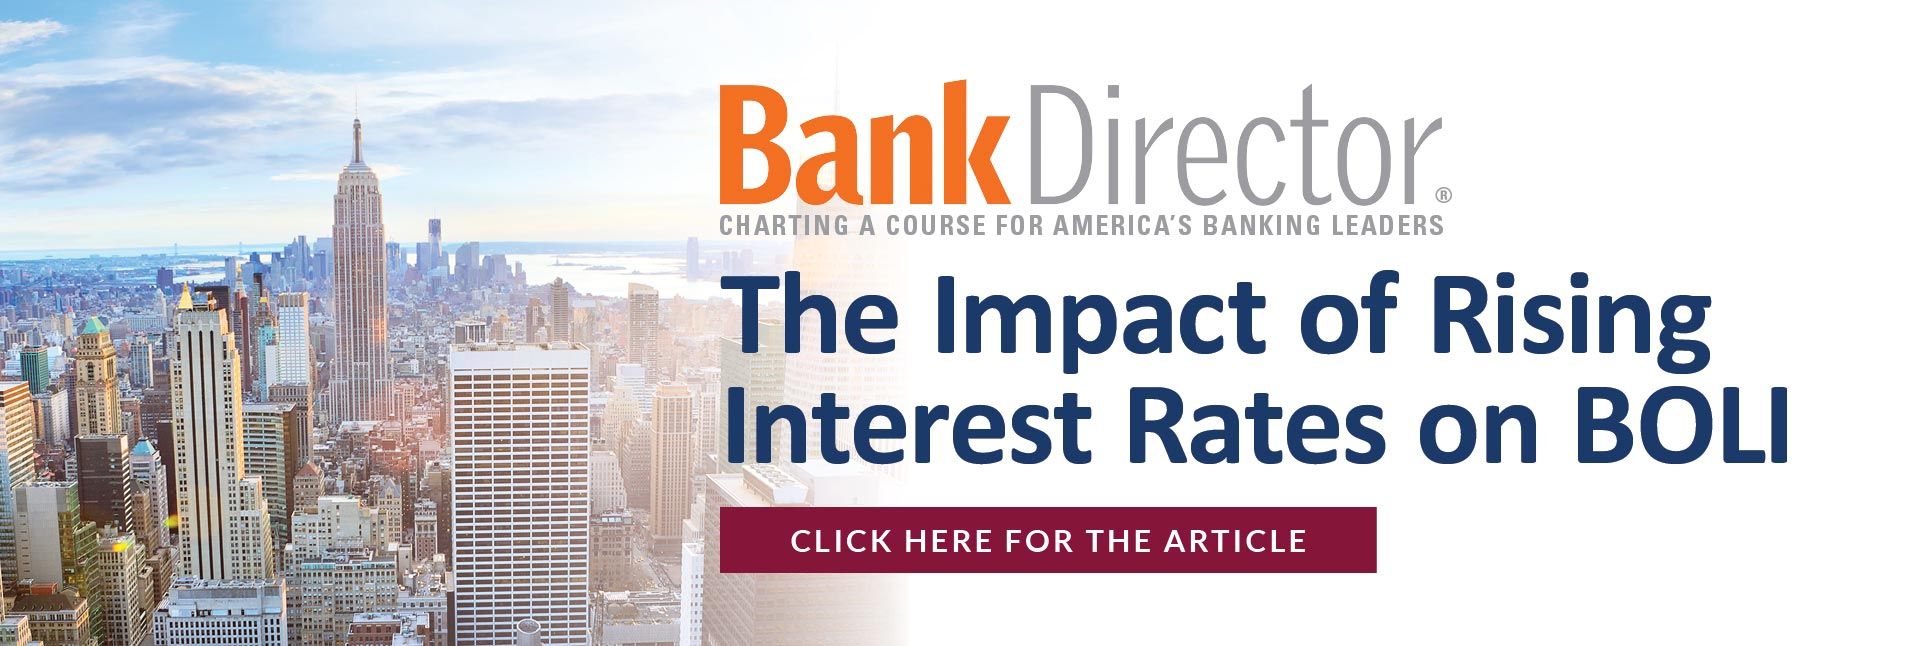 Bank Director - The Impact of Rising Interest Rates on BOLI